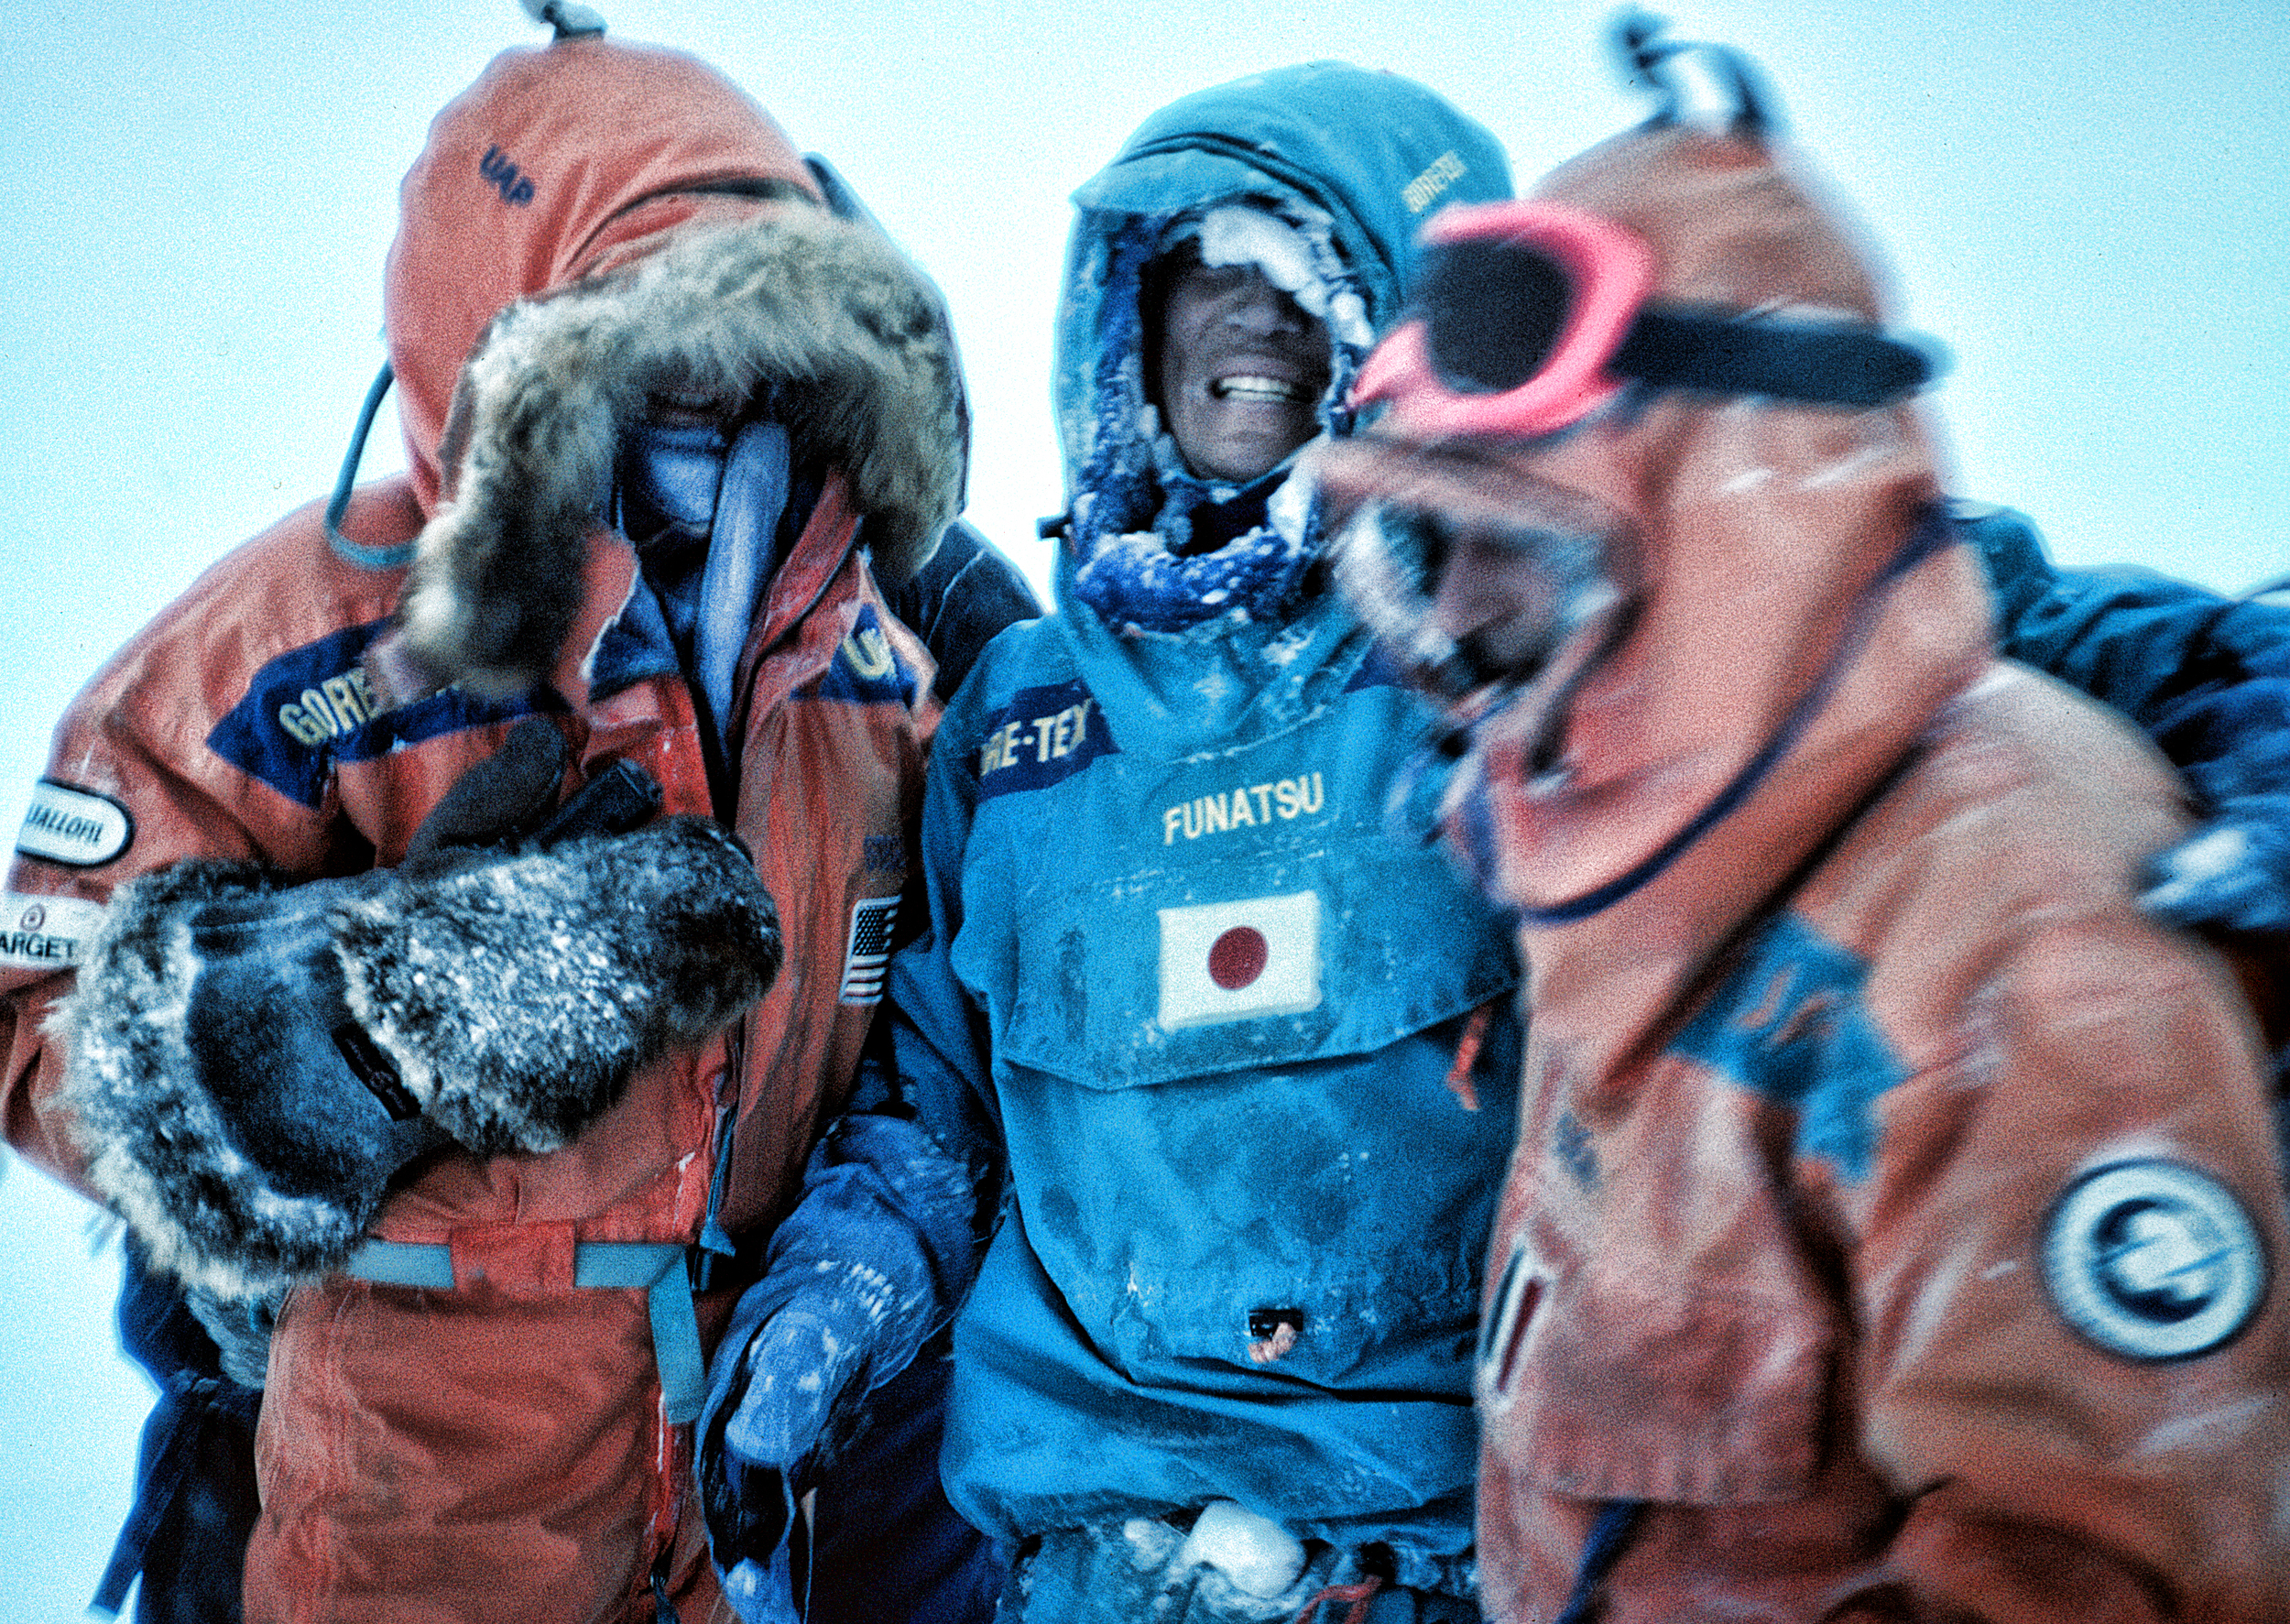 Keizo Funatsu rescue, March 2, 1990.  ©Trans Antarctica, photo by Per Breiehagen